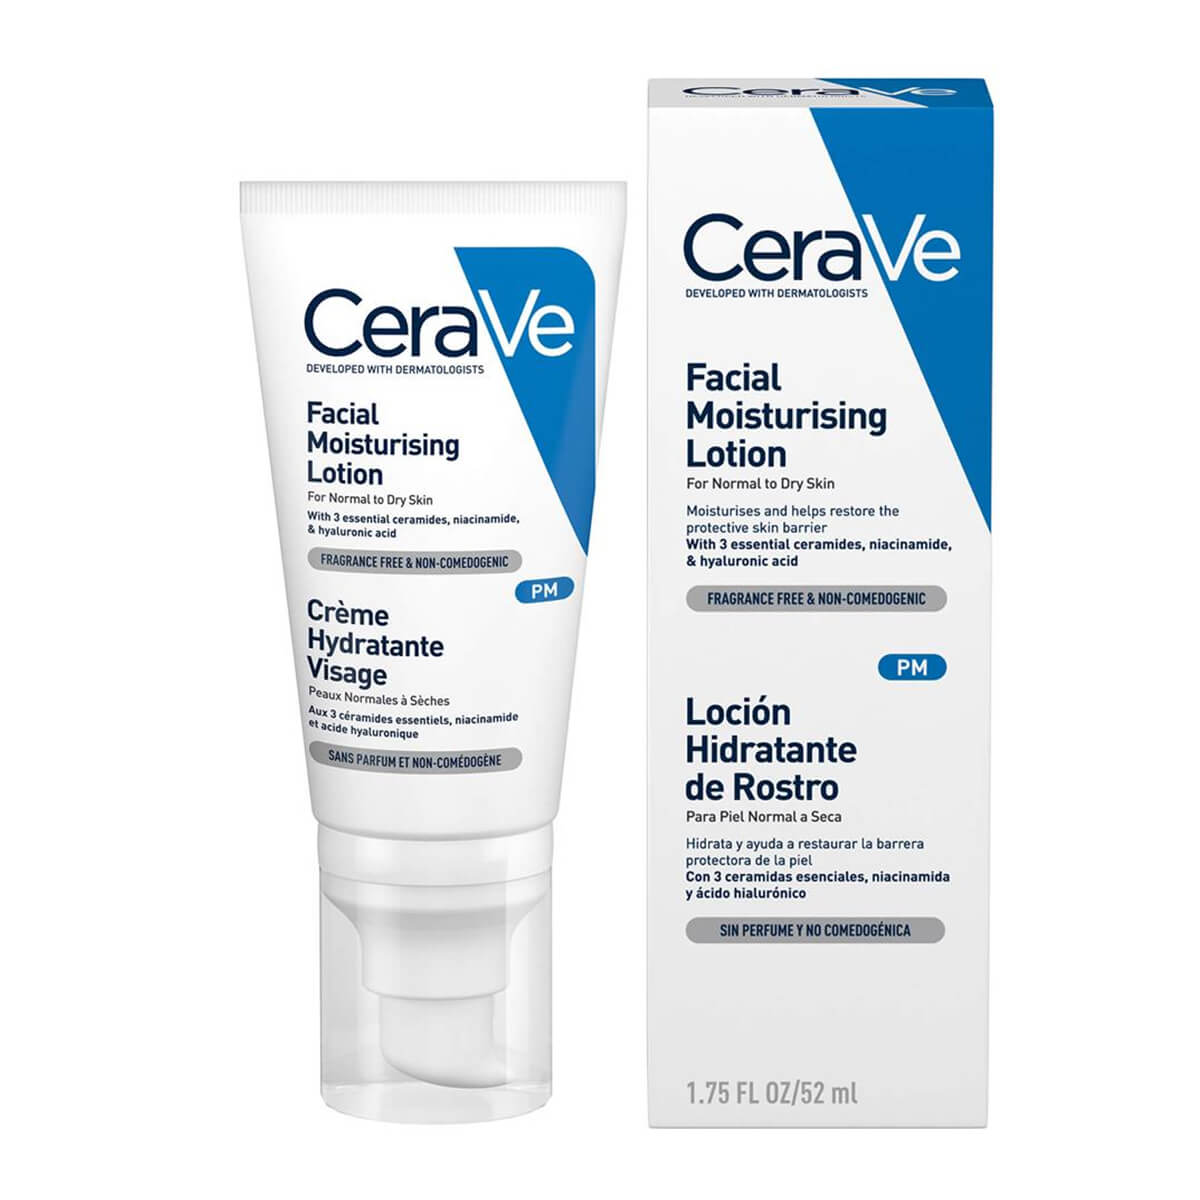 CeraVe PM Facial Moisturising Lotion For Normal to Dry Skin